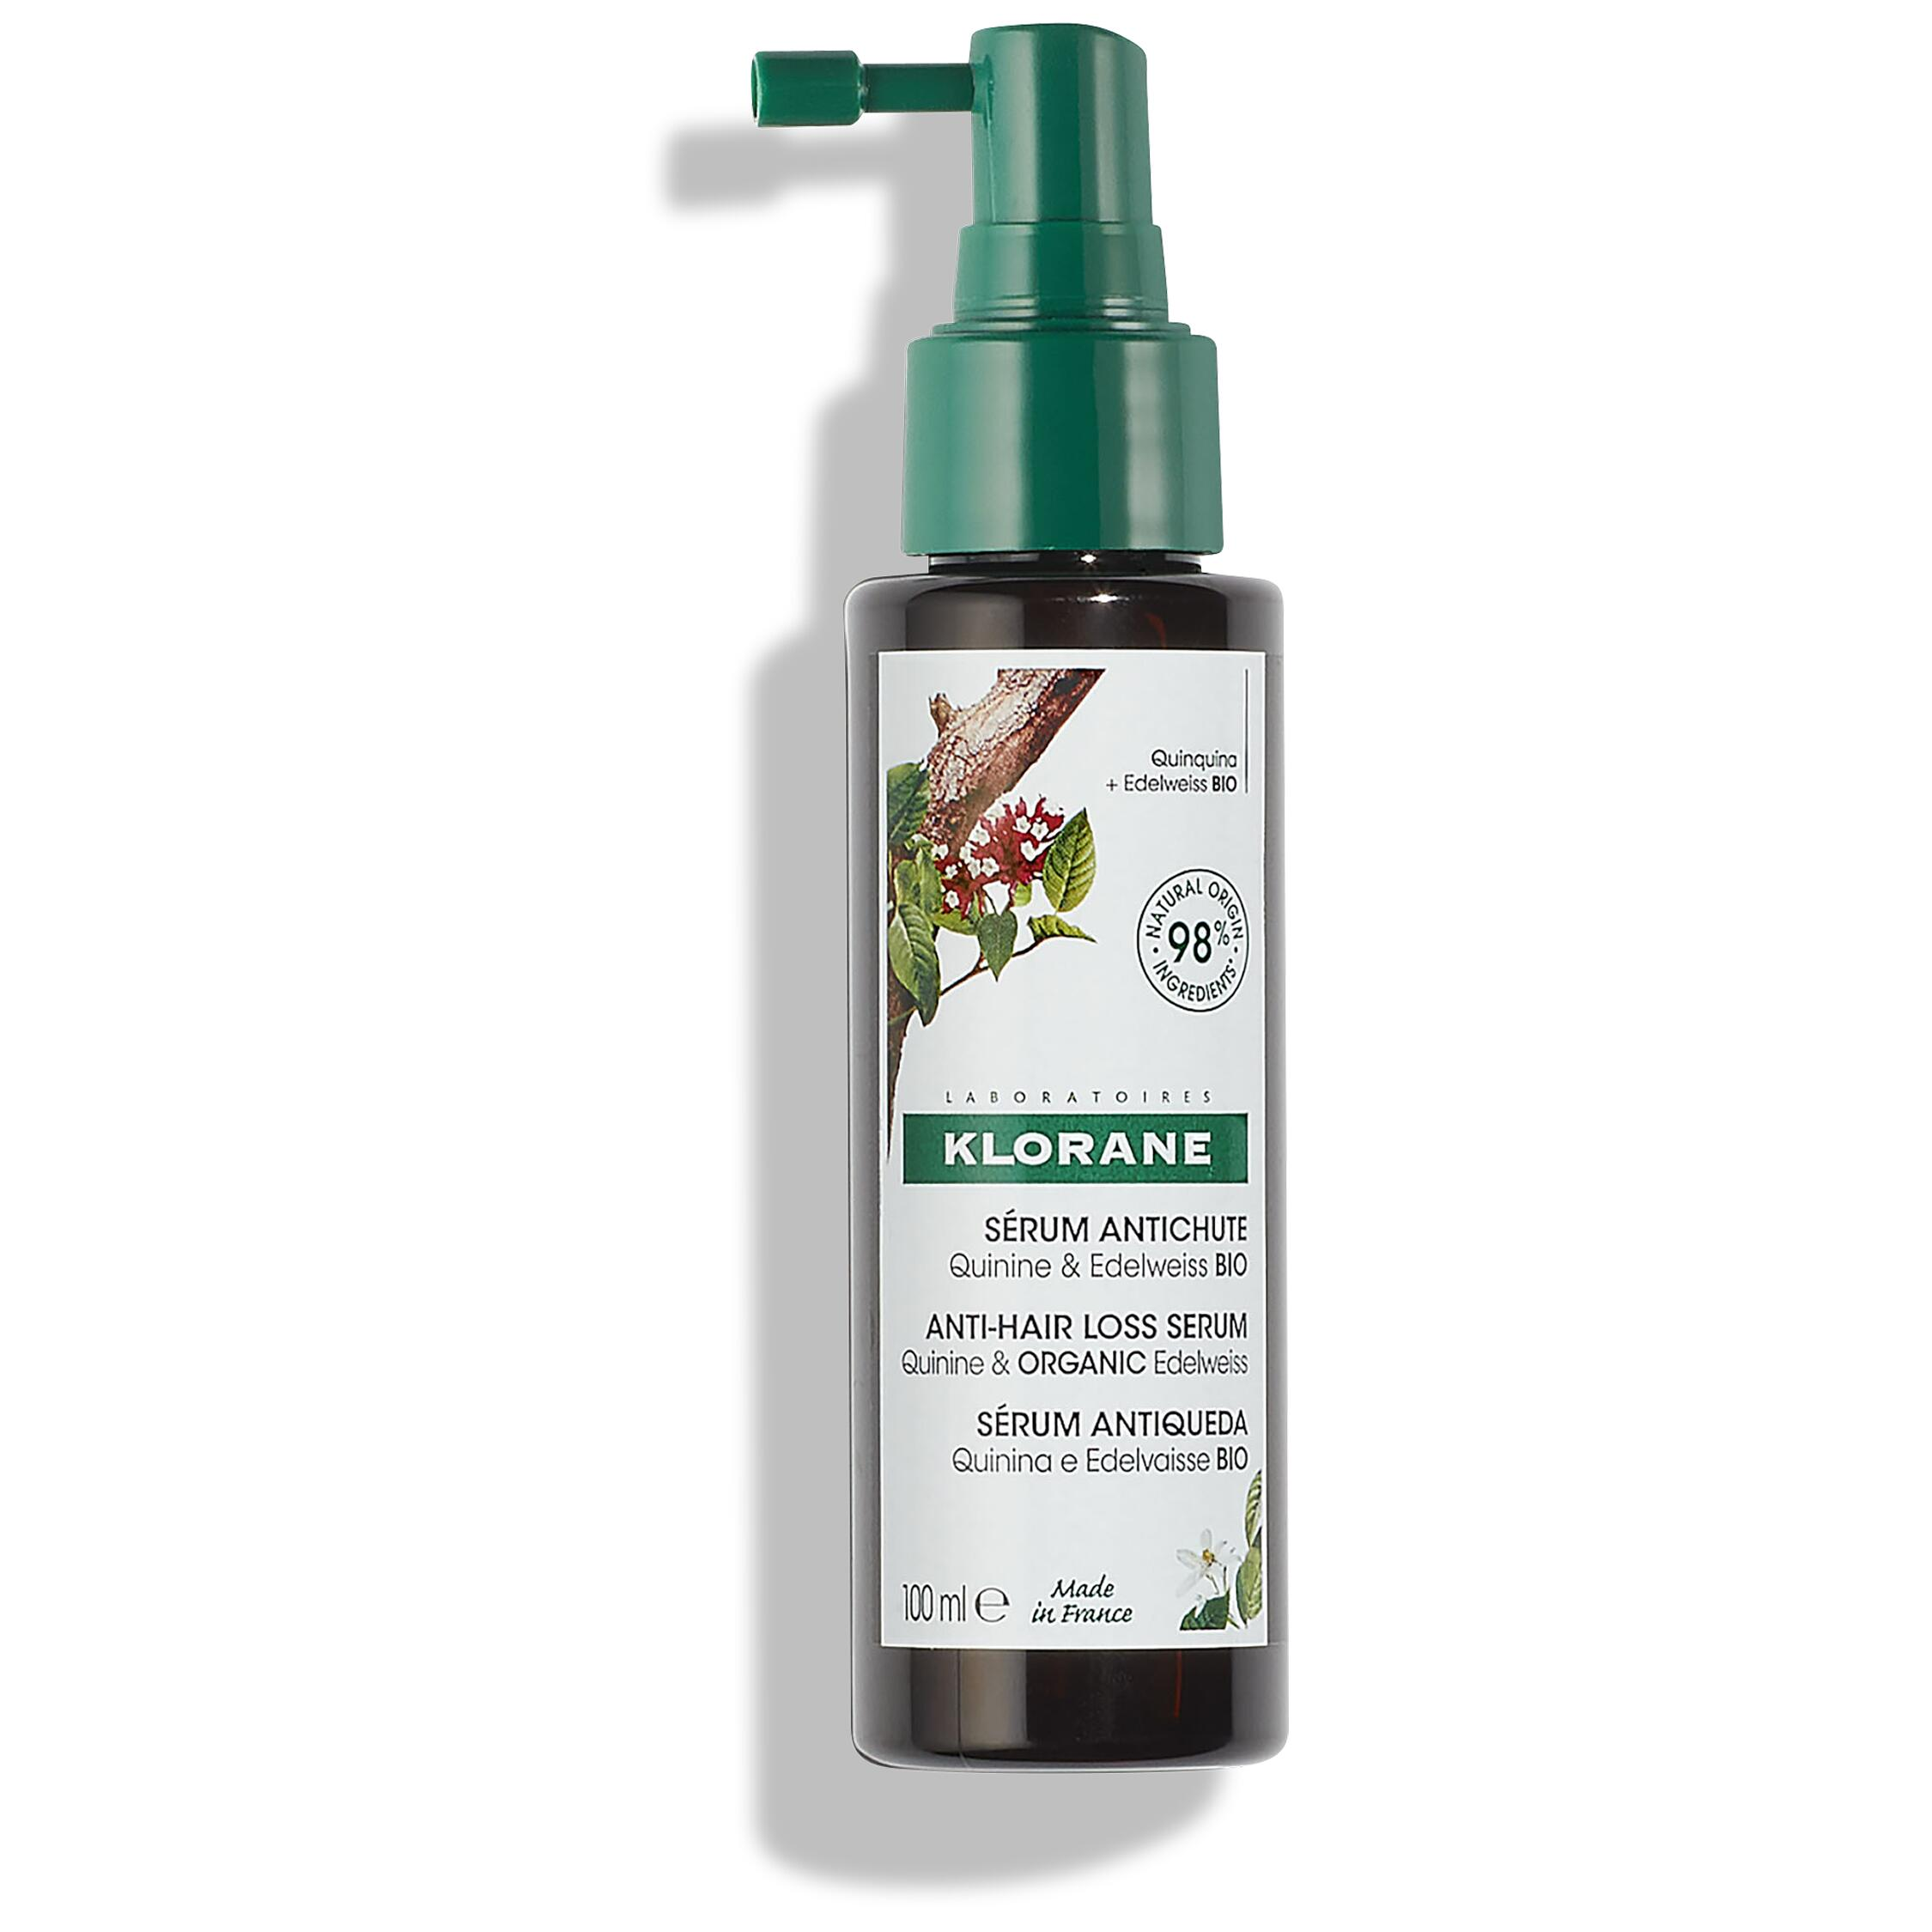 KLORANE Strengthening Serum with Quinine and Organic Edelweiss for Thinning Hair 100ml